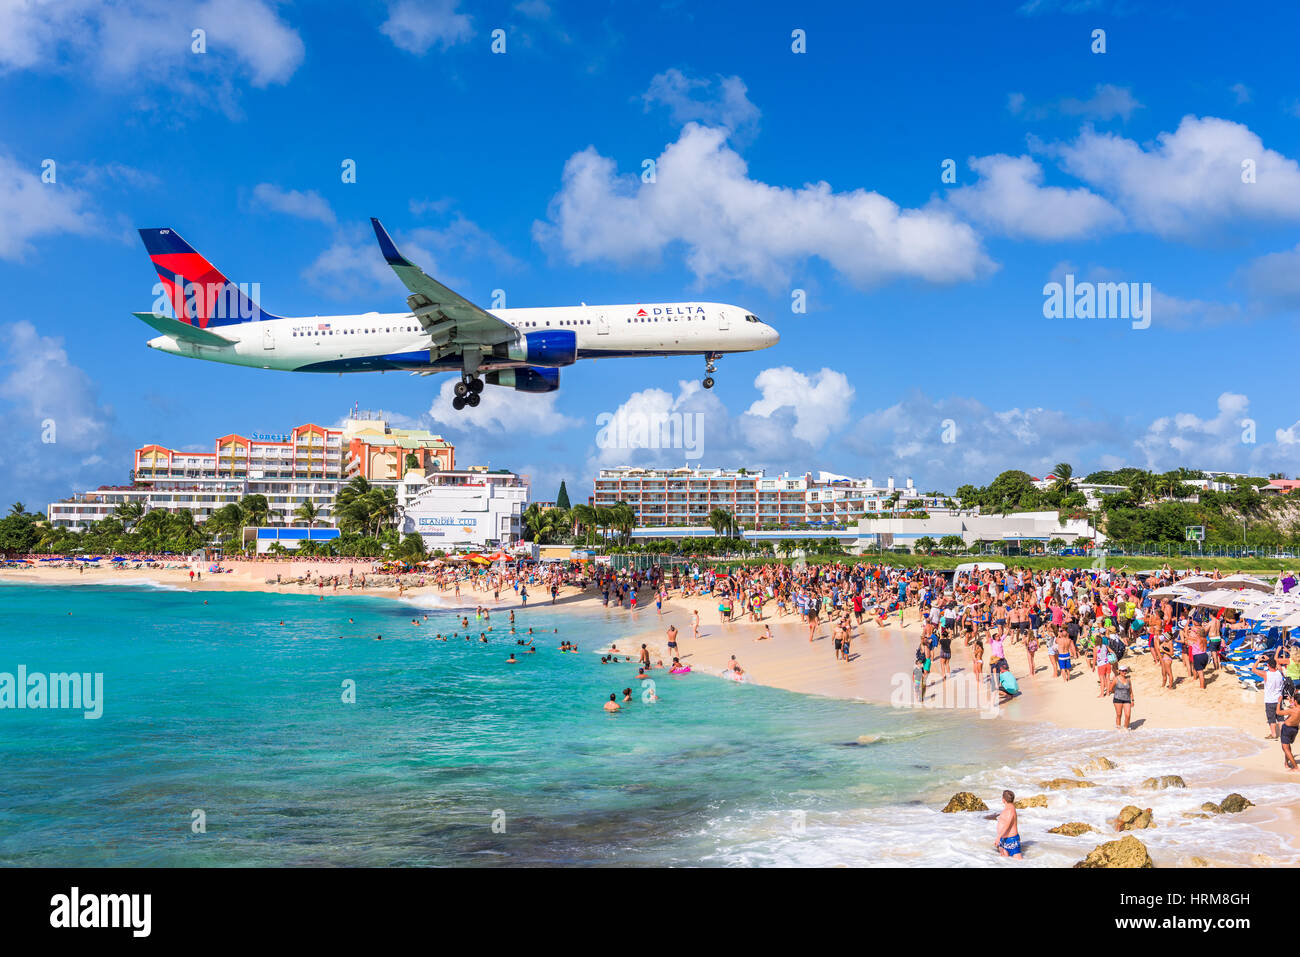 PHILIPSBURG, SINT MAARTEN - DECEMBER 28, 2016: A commercial jet approaches Princess Juliana airport above onlooking - Stock Image